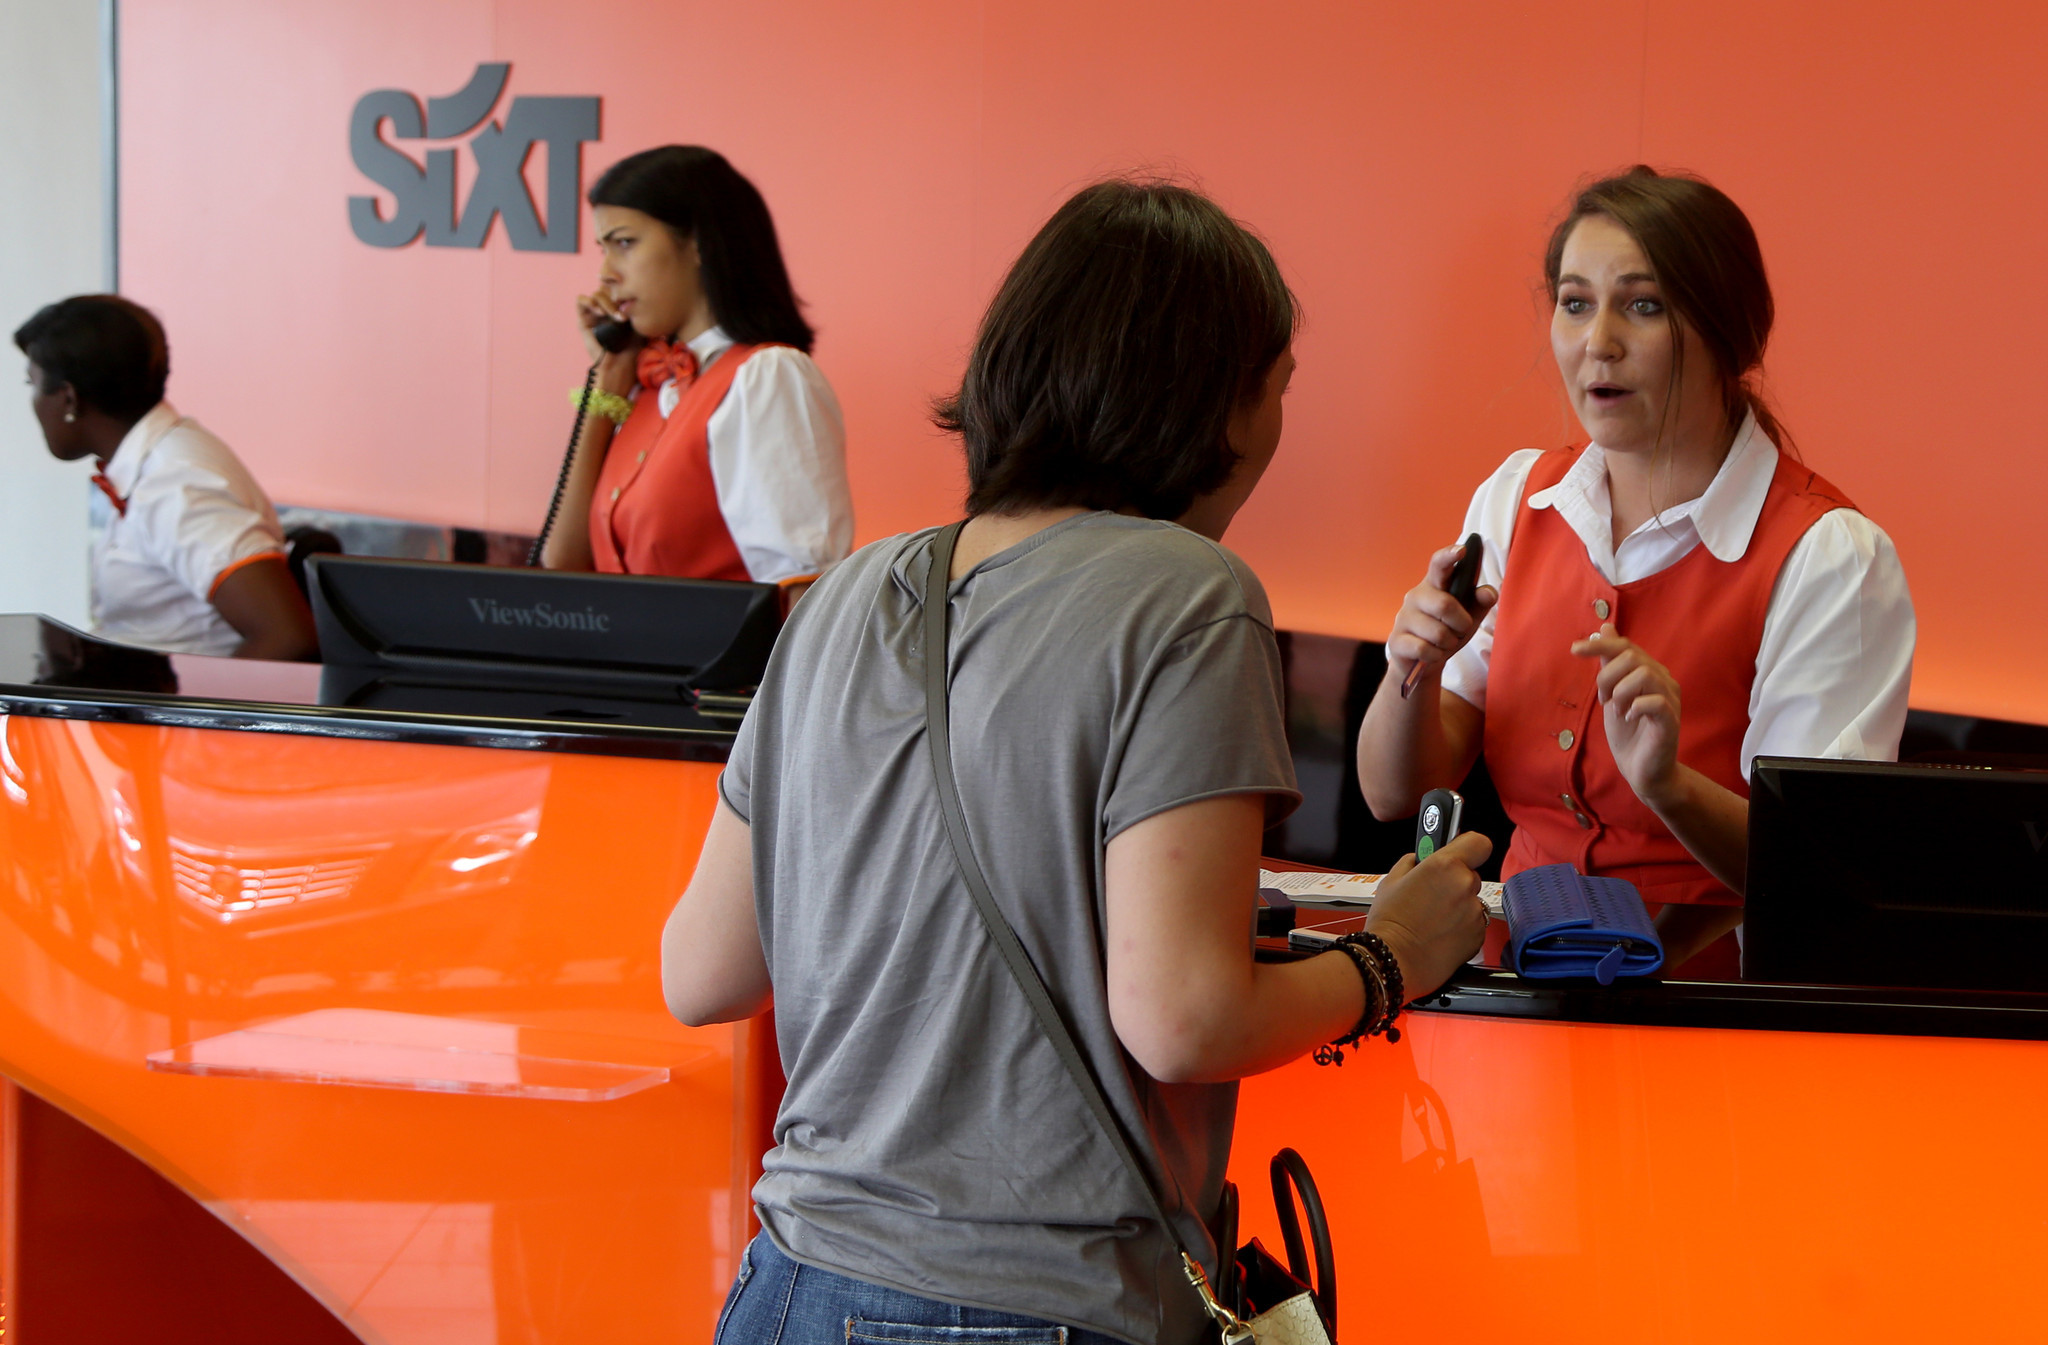 Sixt Car Rental Adding Employees, New Branches In South